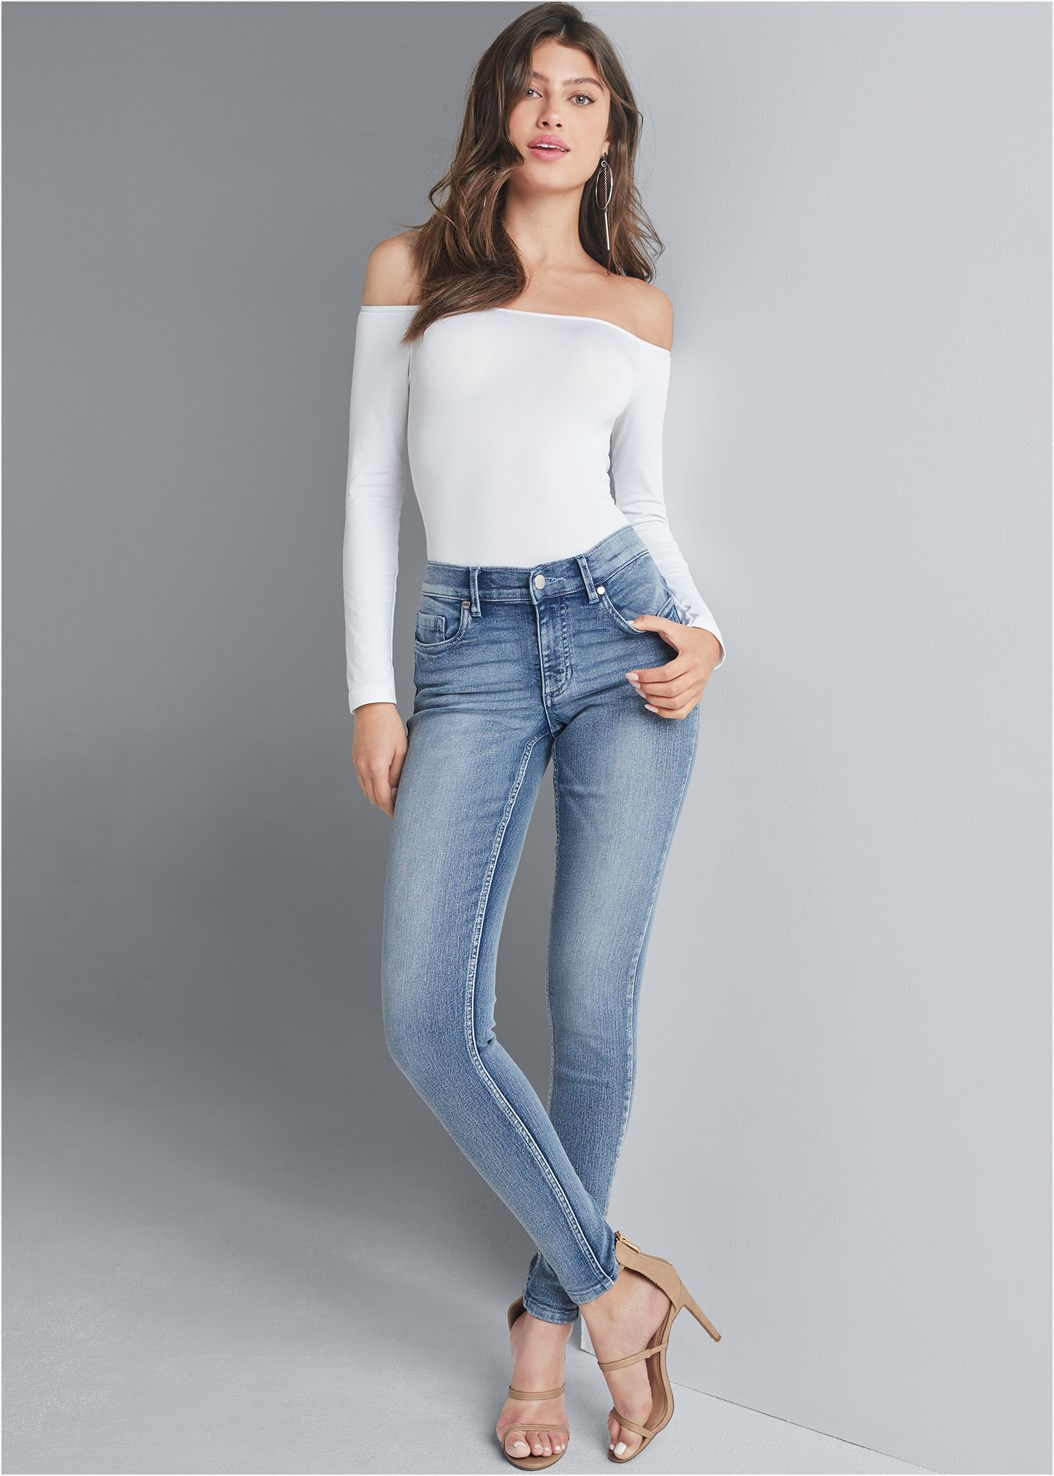 Mid Rise Color Skinny Jeans,Off The Shoulder Top,High Heel Strappy Sandals